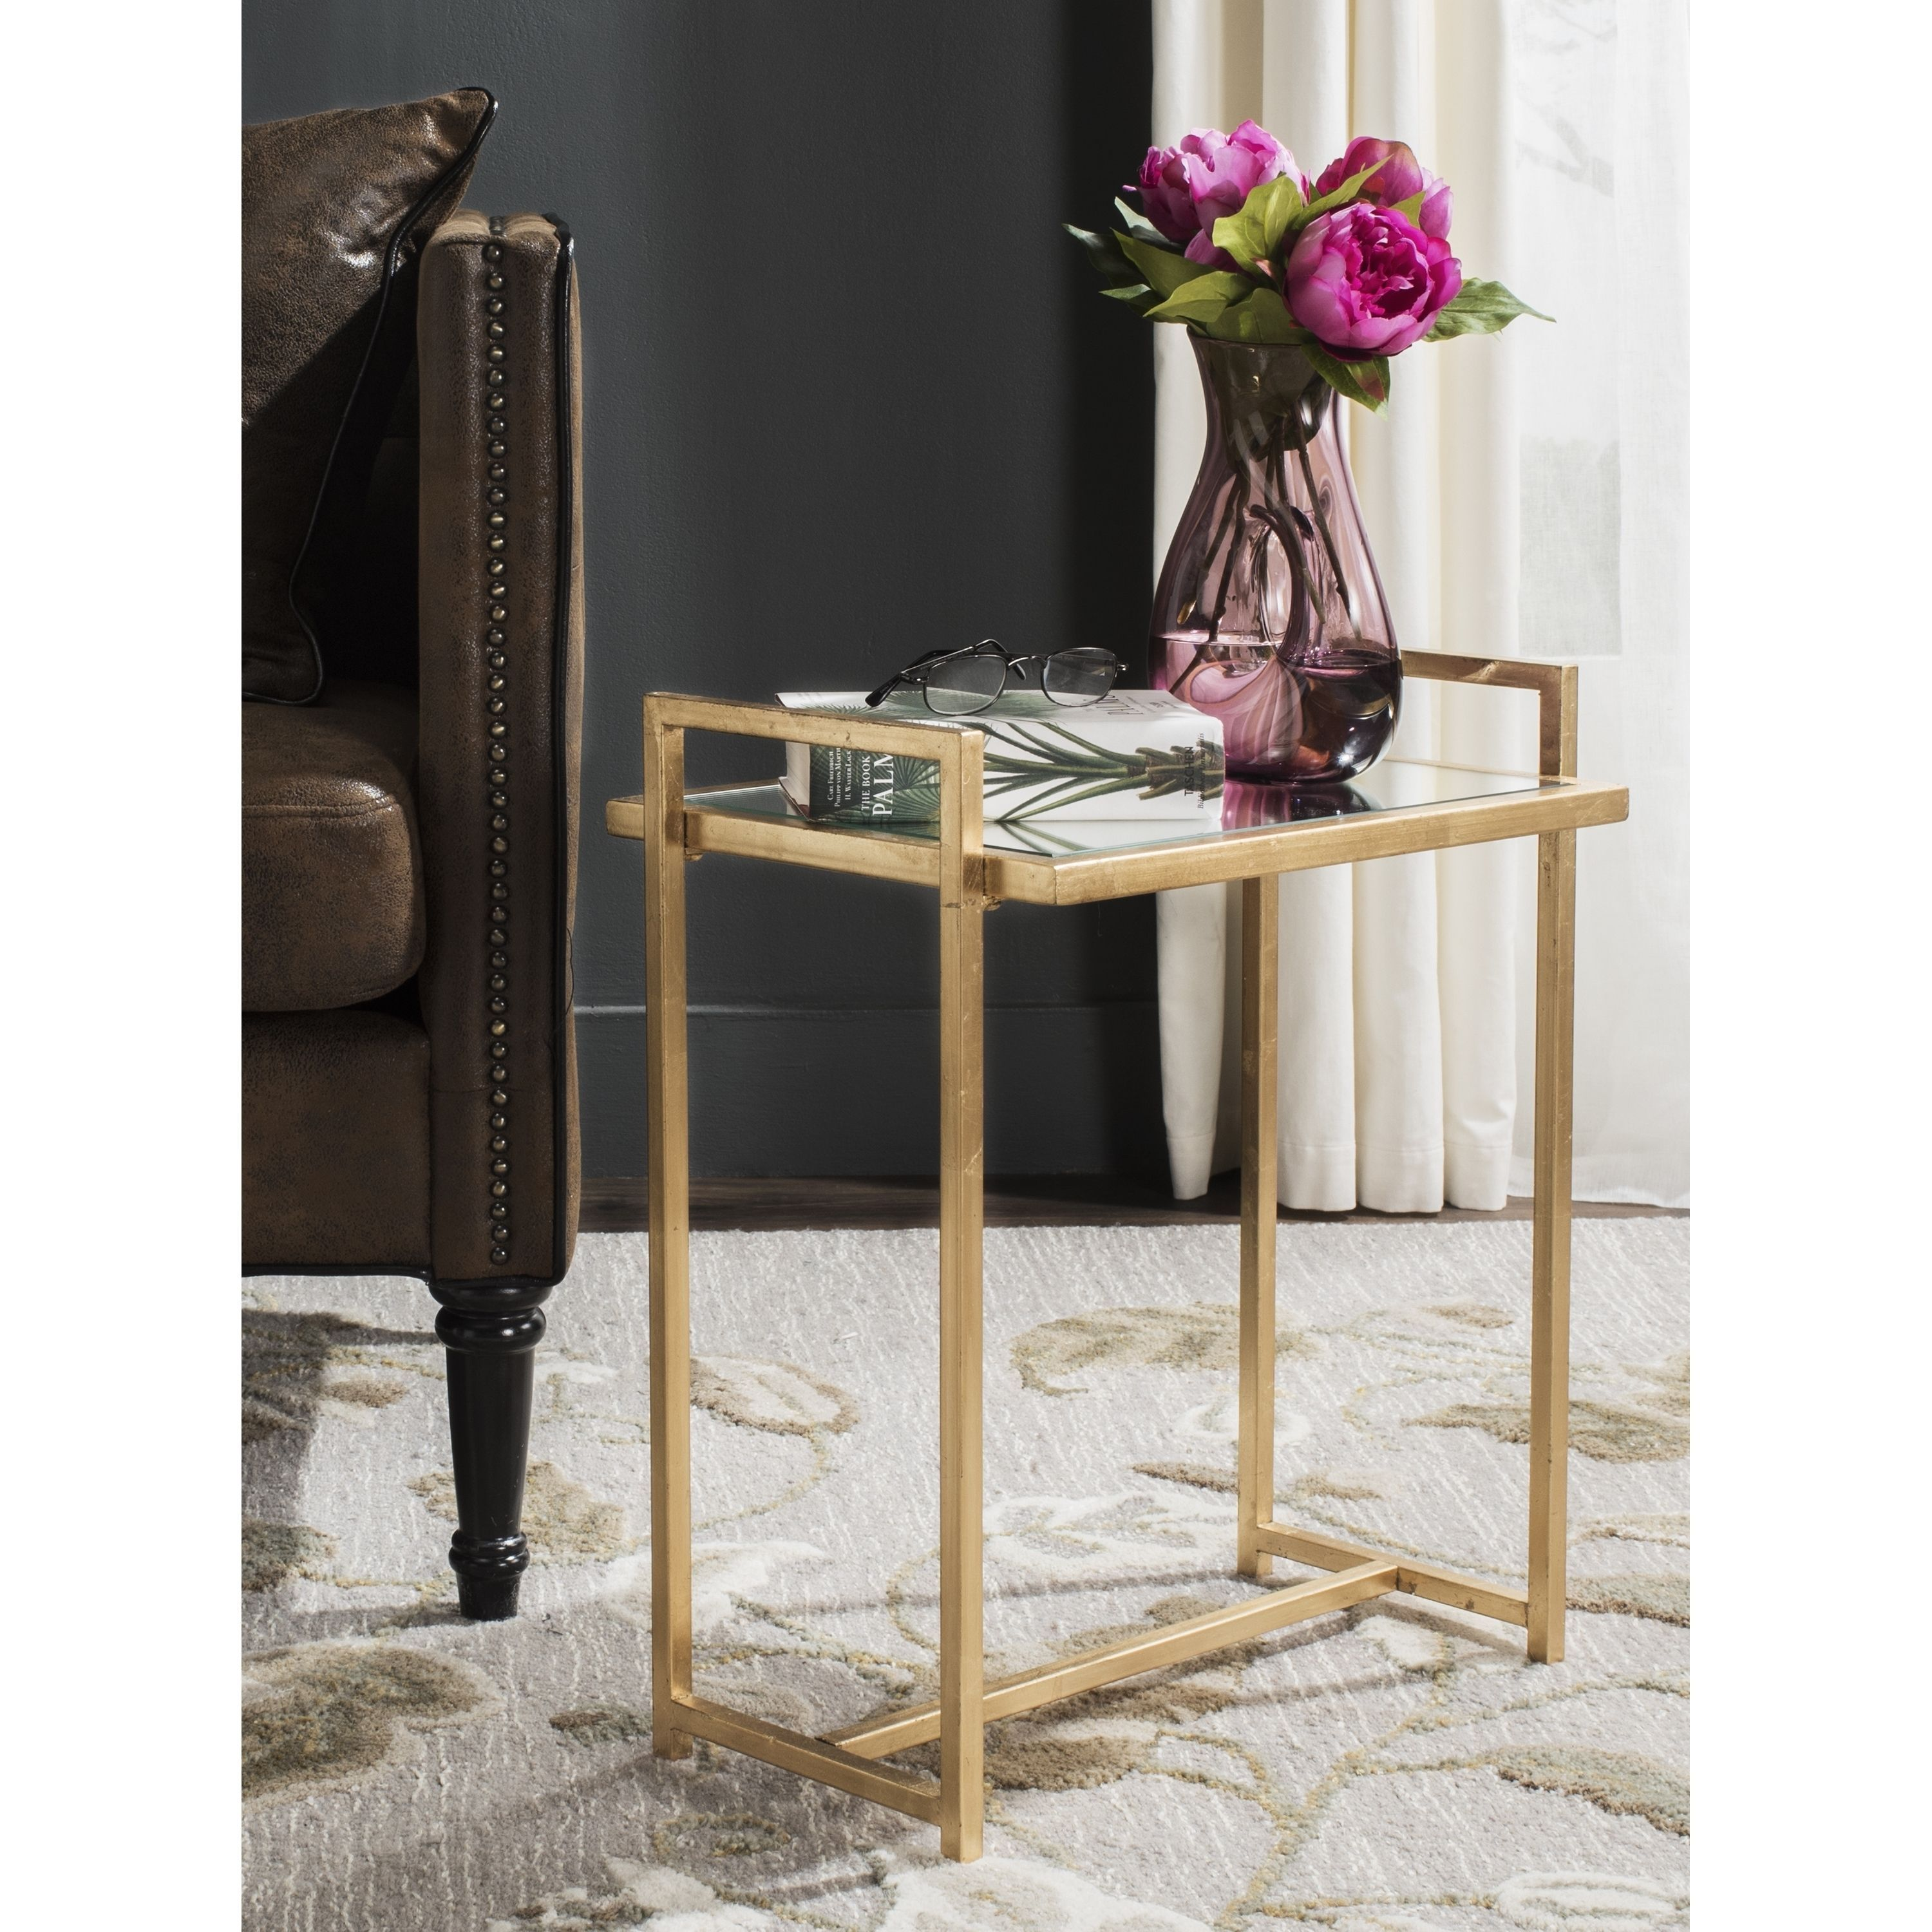 safavieh renly antique gold leaf end table products accent tall tables target furniture tulsa vanity rope lamp circular cover home decor outdoor wicker side with umbrella hole